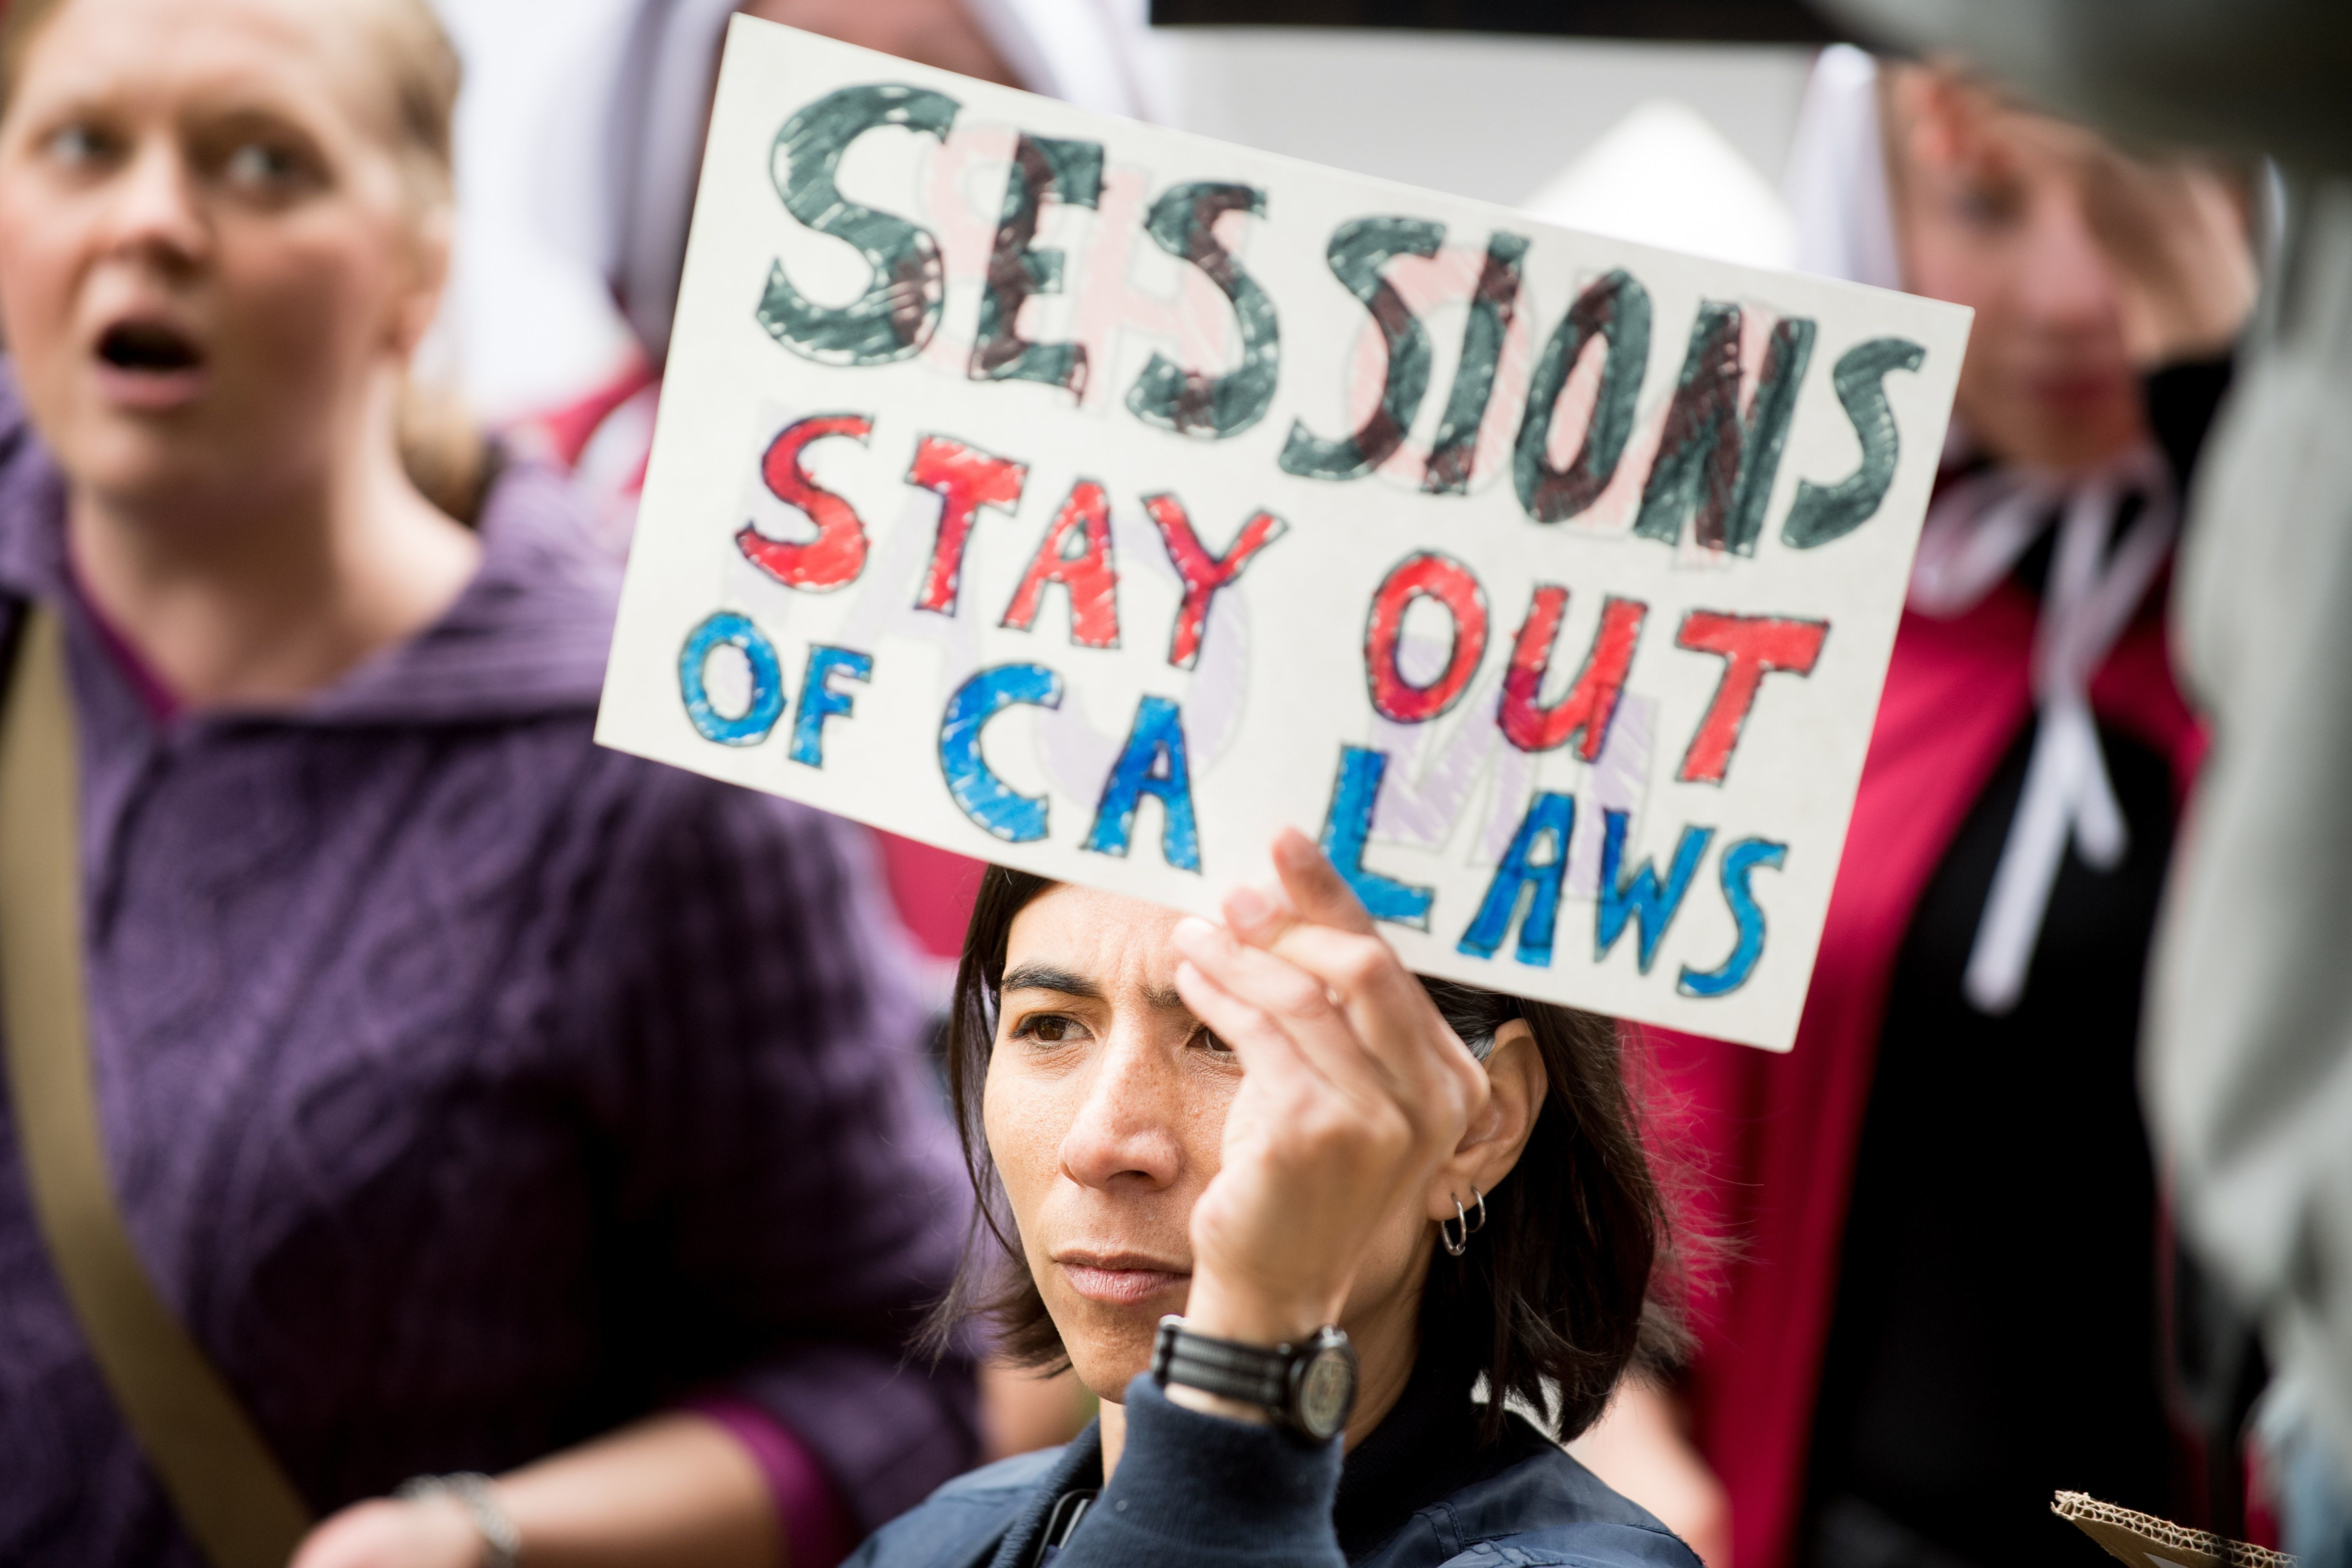 People protest outside a speech by US Attorney General Jeff Sessions March 7, 2018, in Sacramento, California. Sessions admonished California politicians for not cooperating with federal authorities on immigration enforcement issues. US Attorney General Jeff Sessions warned California Wednesday that the federal government would use all its legal powers to fight protections provided unauthorized immigrants, a day after suing the state over its sanctuary laws.'California is using every power it has -- and some it doesn't -- to frustrate federal law enforcement. So you can be sure I'm going to use every power I have to stop them,' Sessions told law enforcement officials in Sacramento.  / AFP PHOTO / NOAH BERGER        (Photo credit should read NOAH BERGER/AFP/Getty Images)